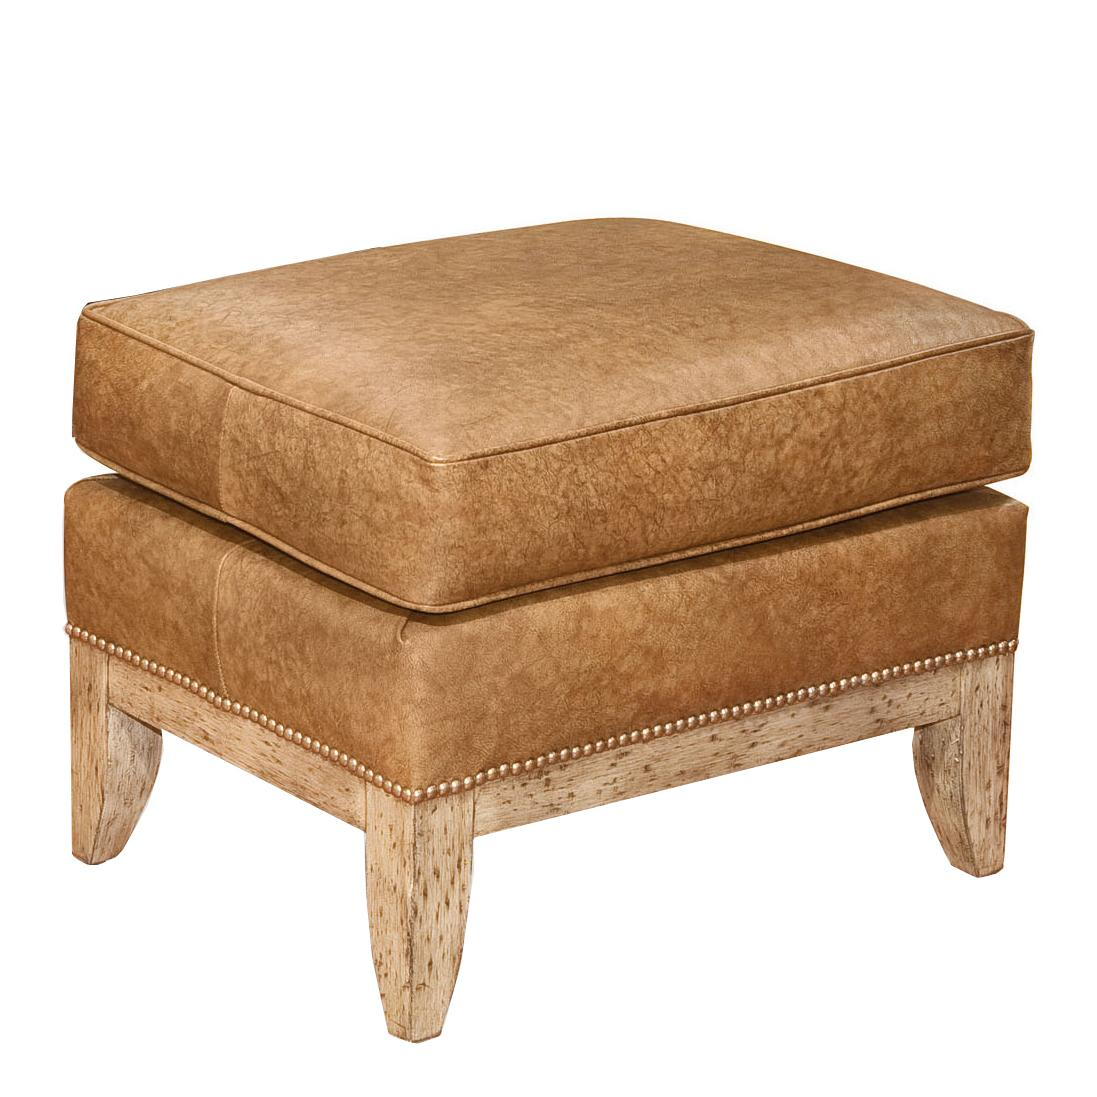 Fairfield Chairs Leather Ottoman - Item Number: 5155-20